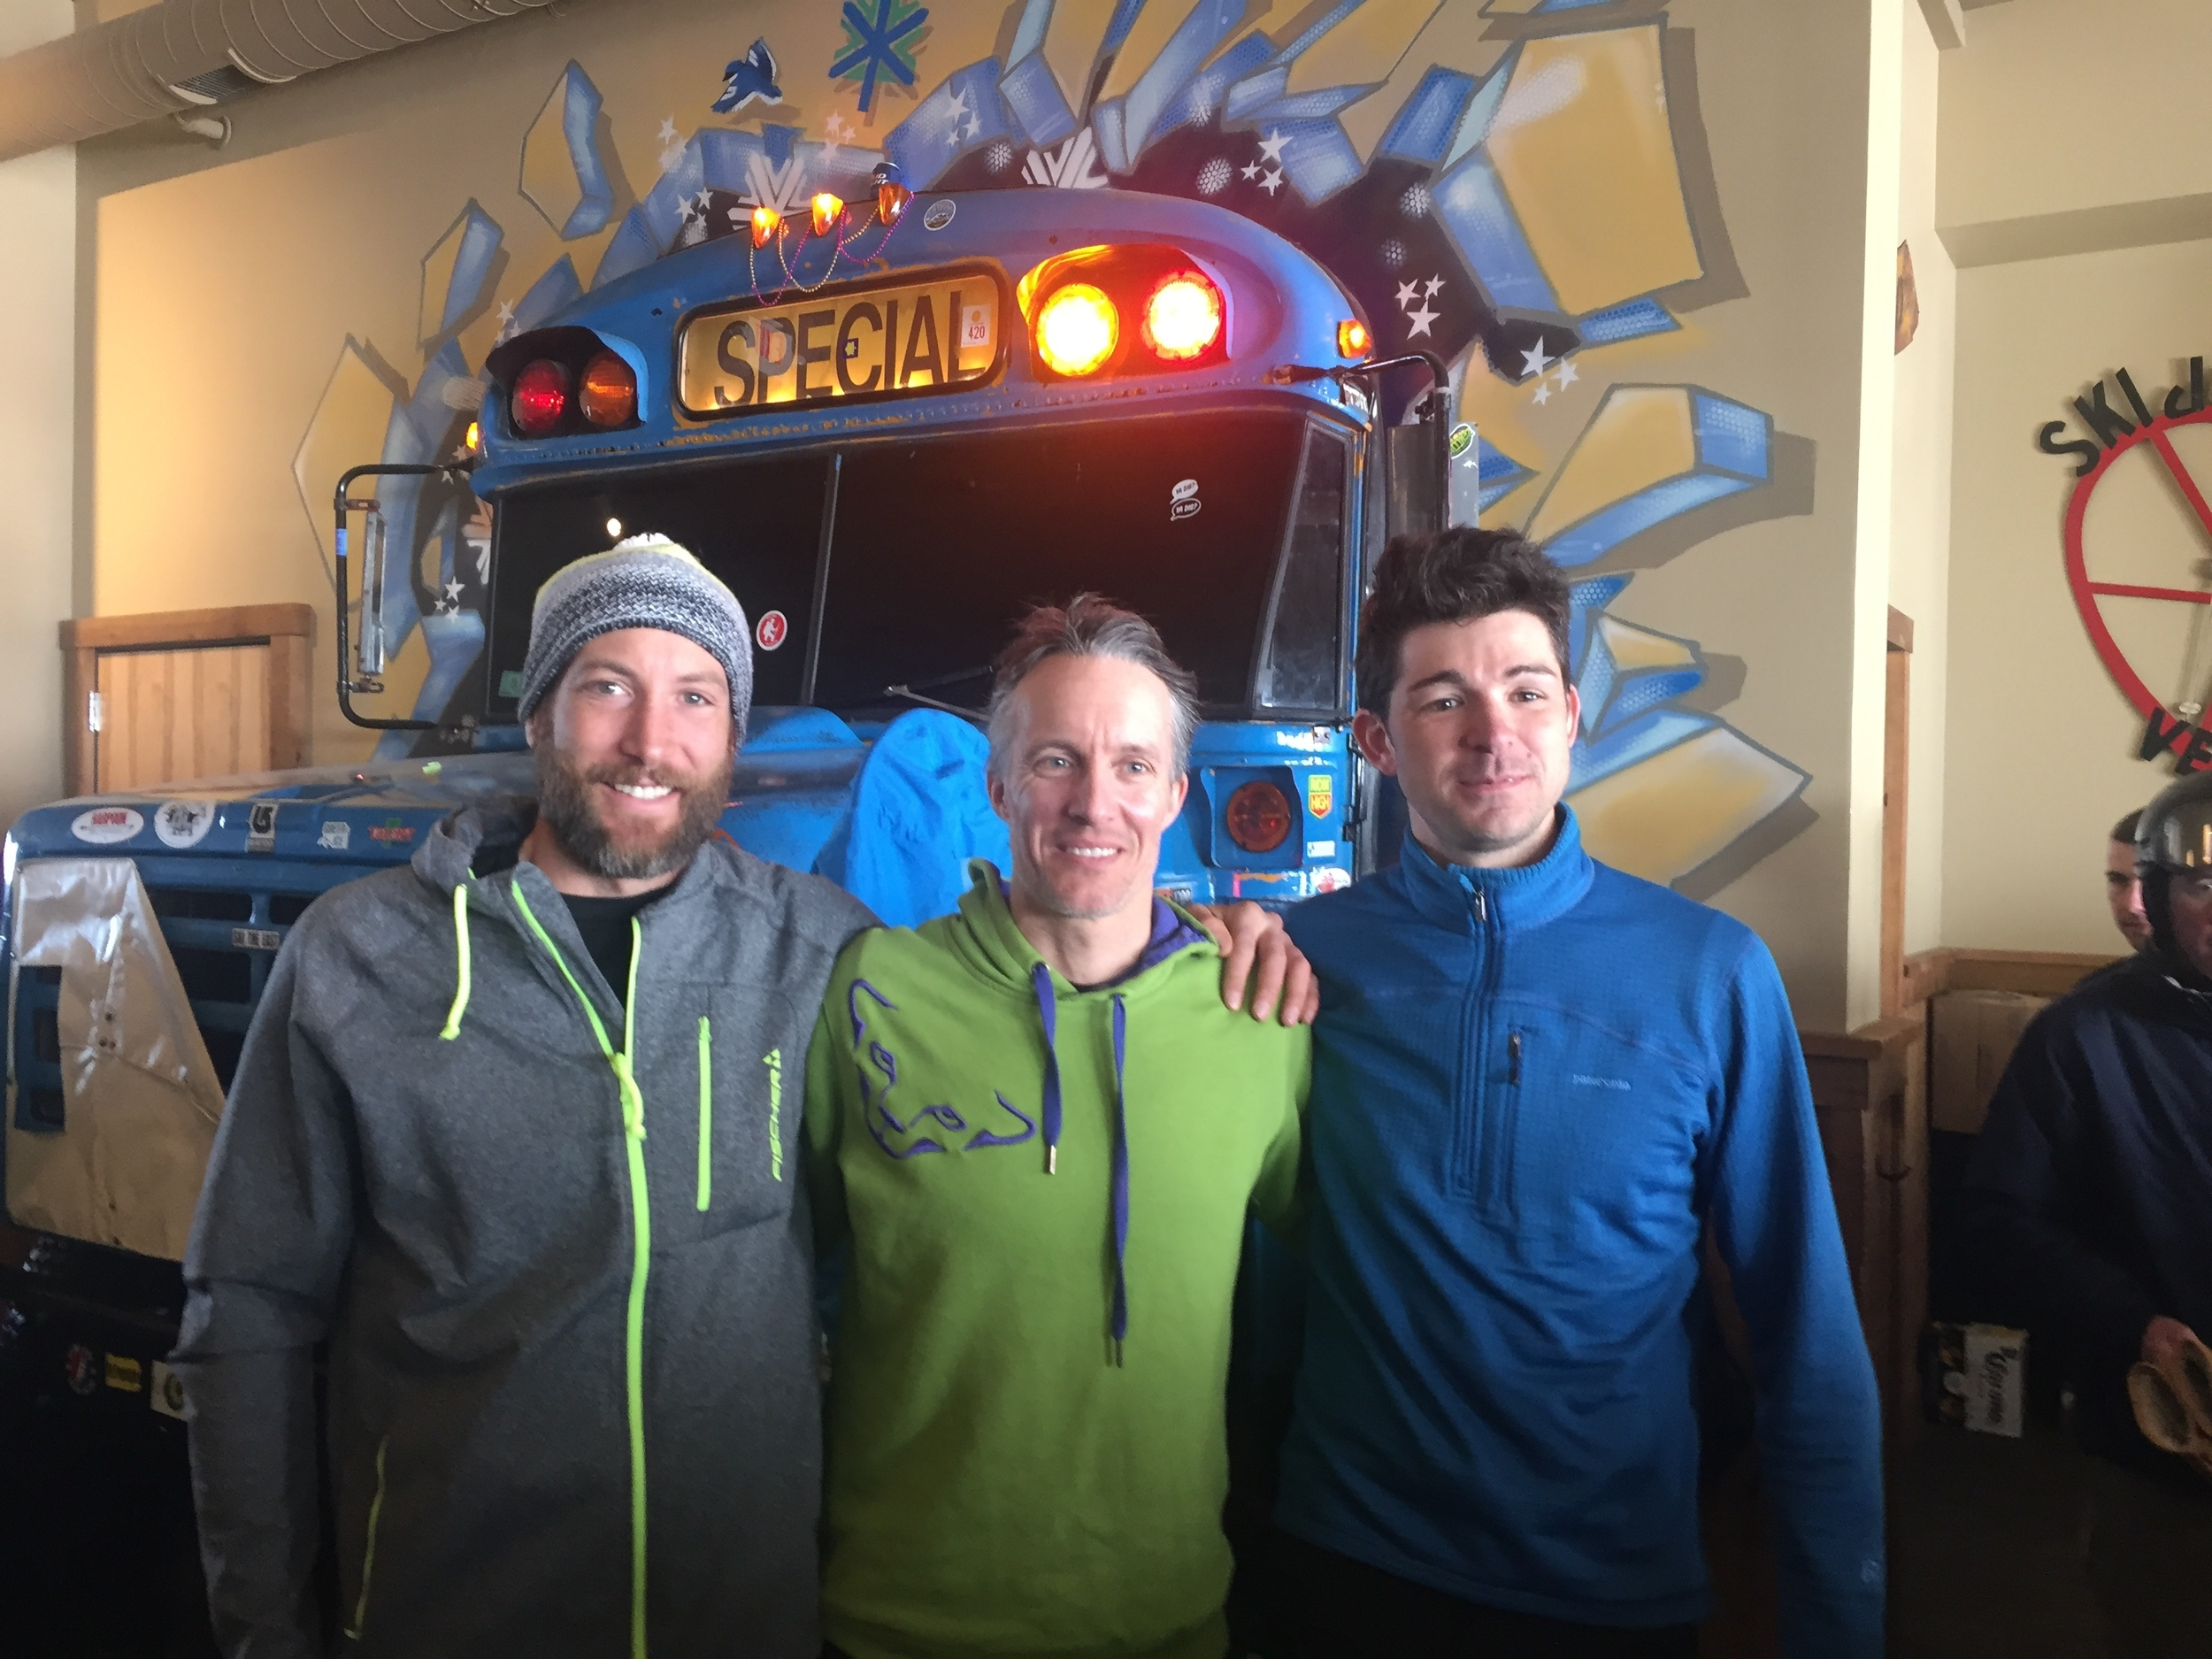 Jay Peak Skimo - Long Course Podium: 1st - George Visser, 2nd - Andrew Drummond, 3rd - Brian MacIlvain